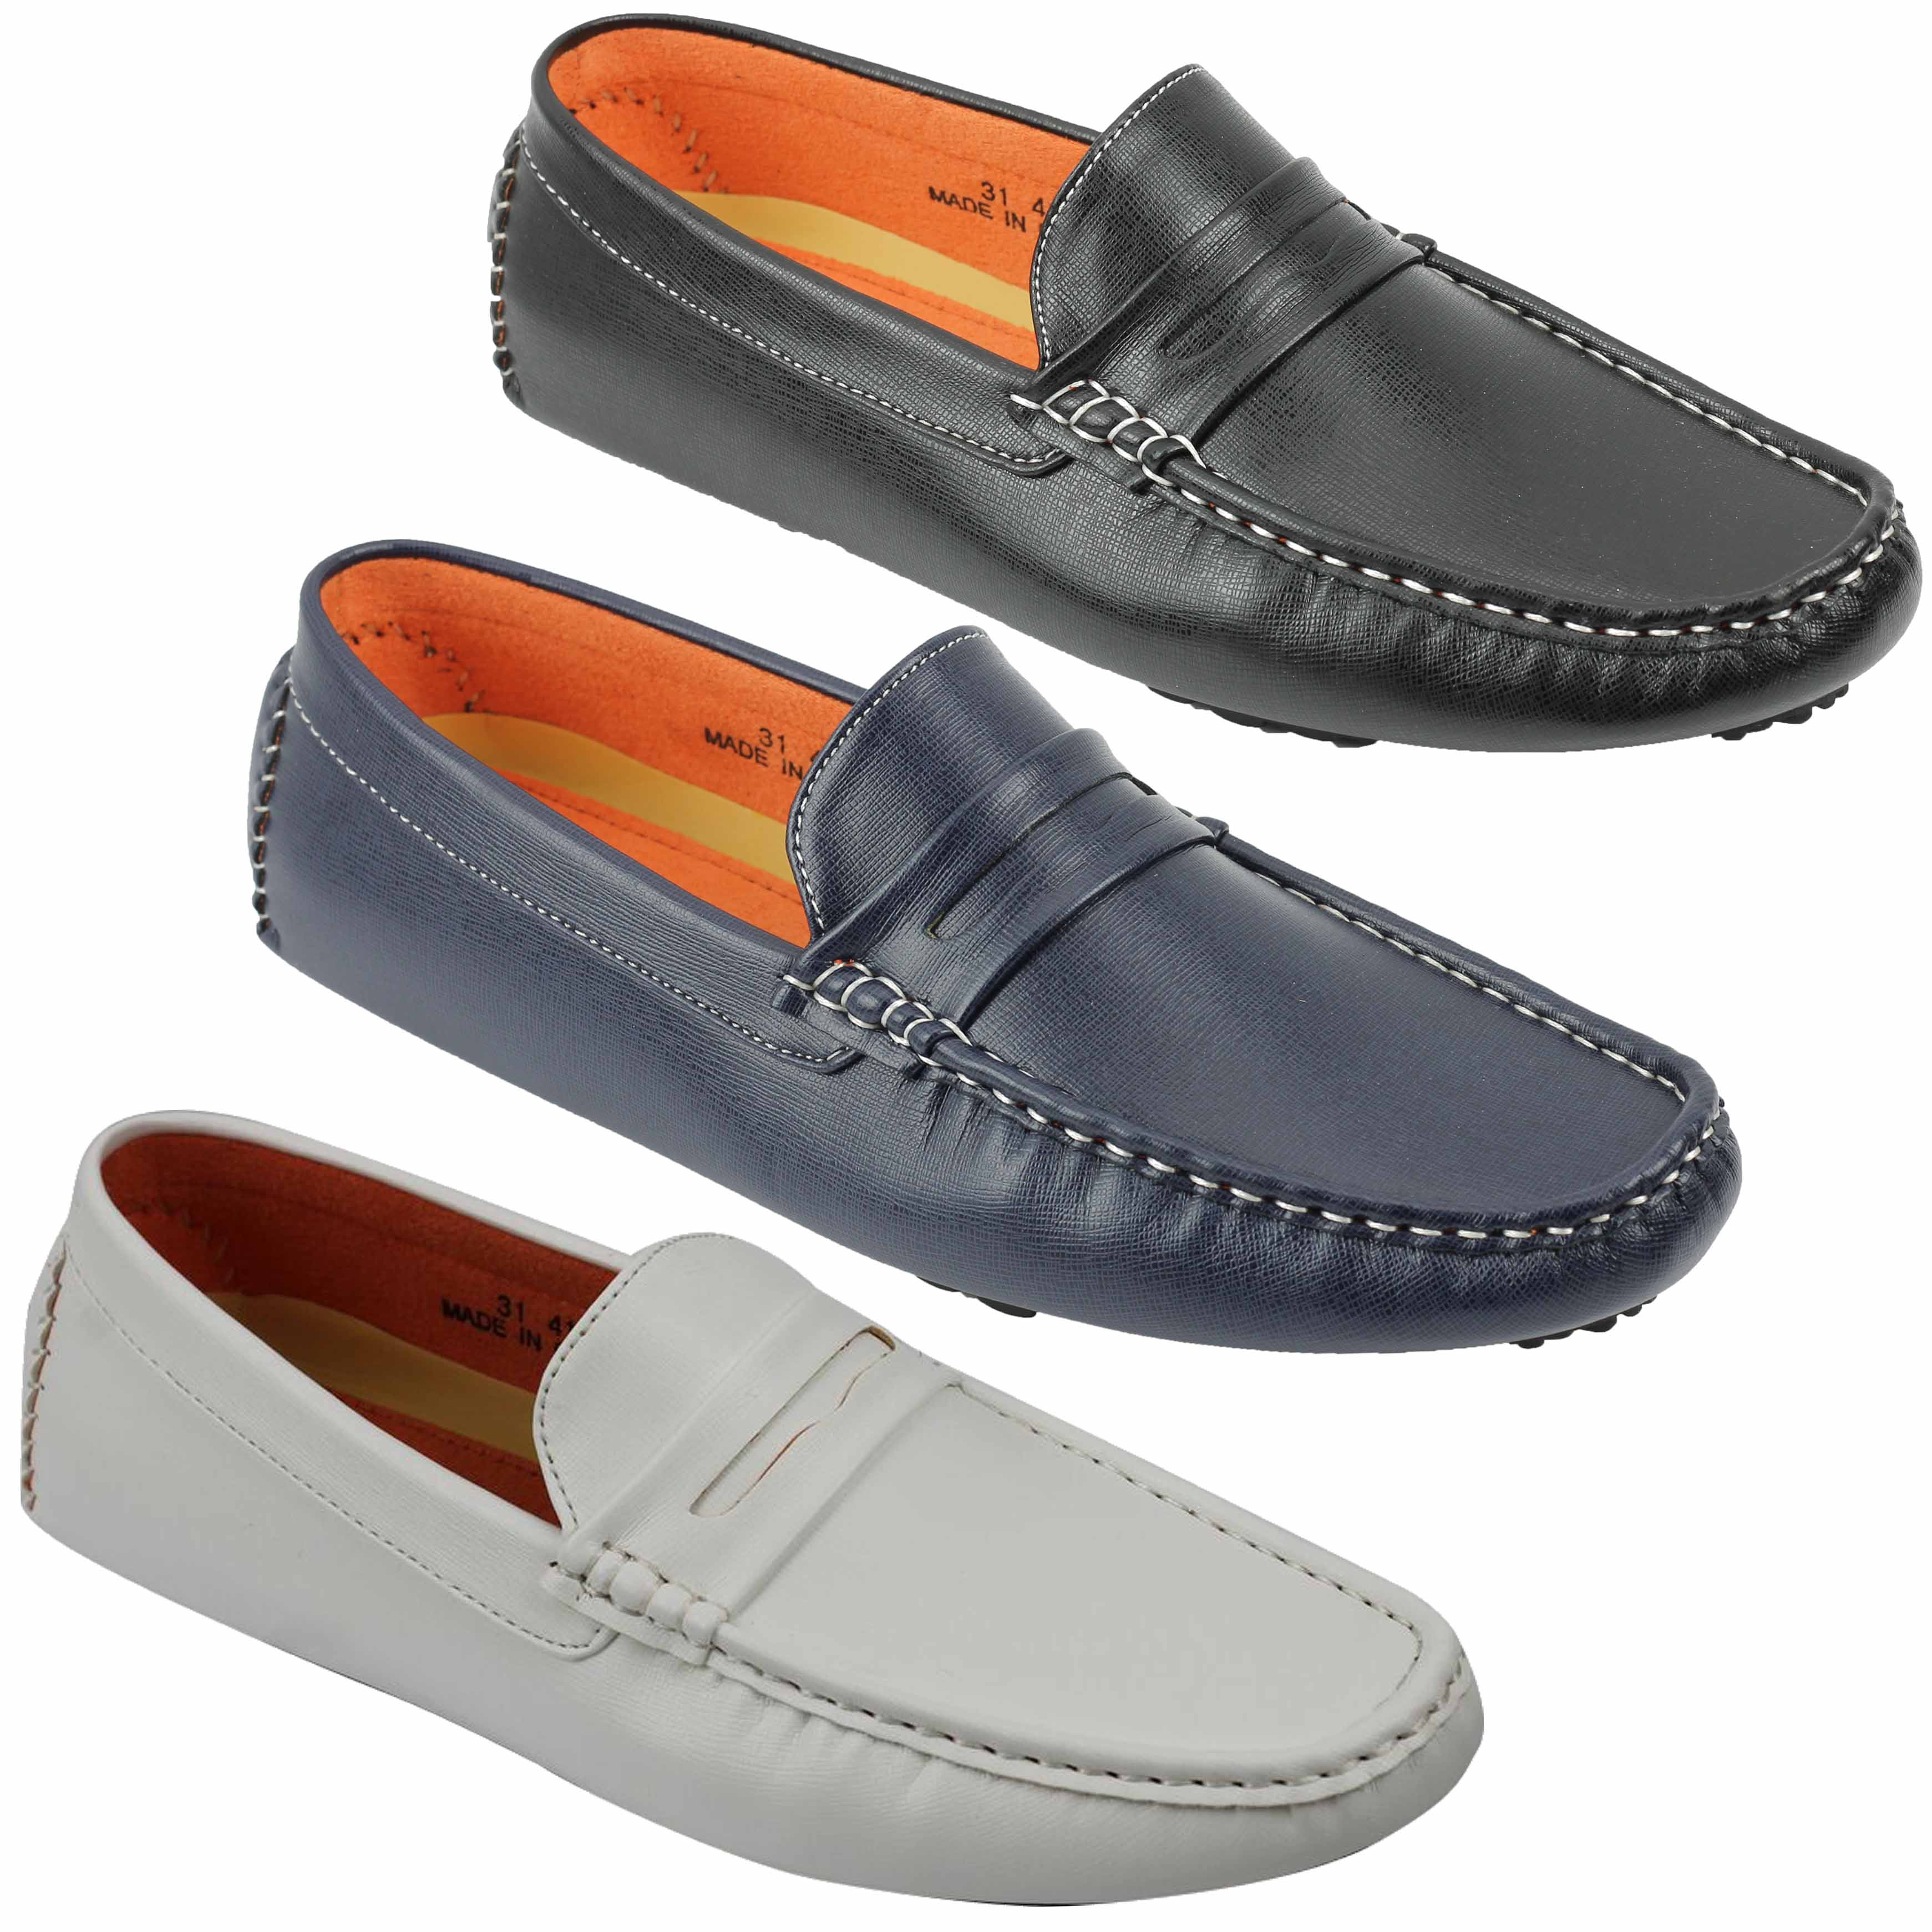 0e76a273174c8 Details about New Mens Faux Leather Slip on Penny Loafers Driving Shoes UK  Sizes 6 7 8 9 10 11